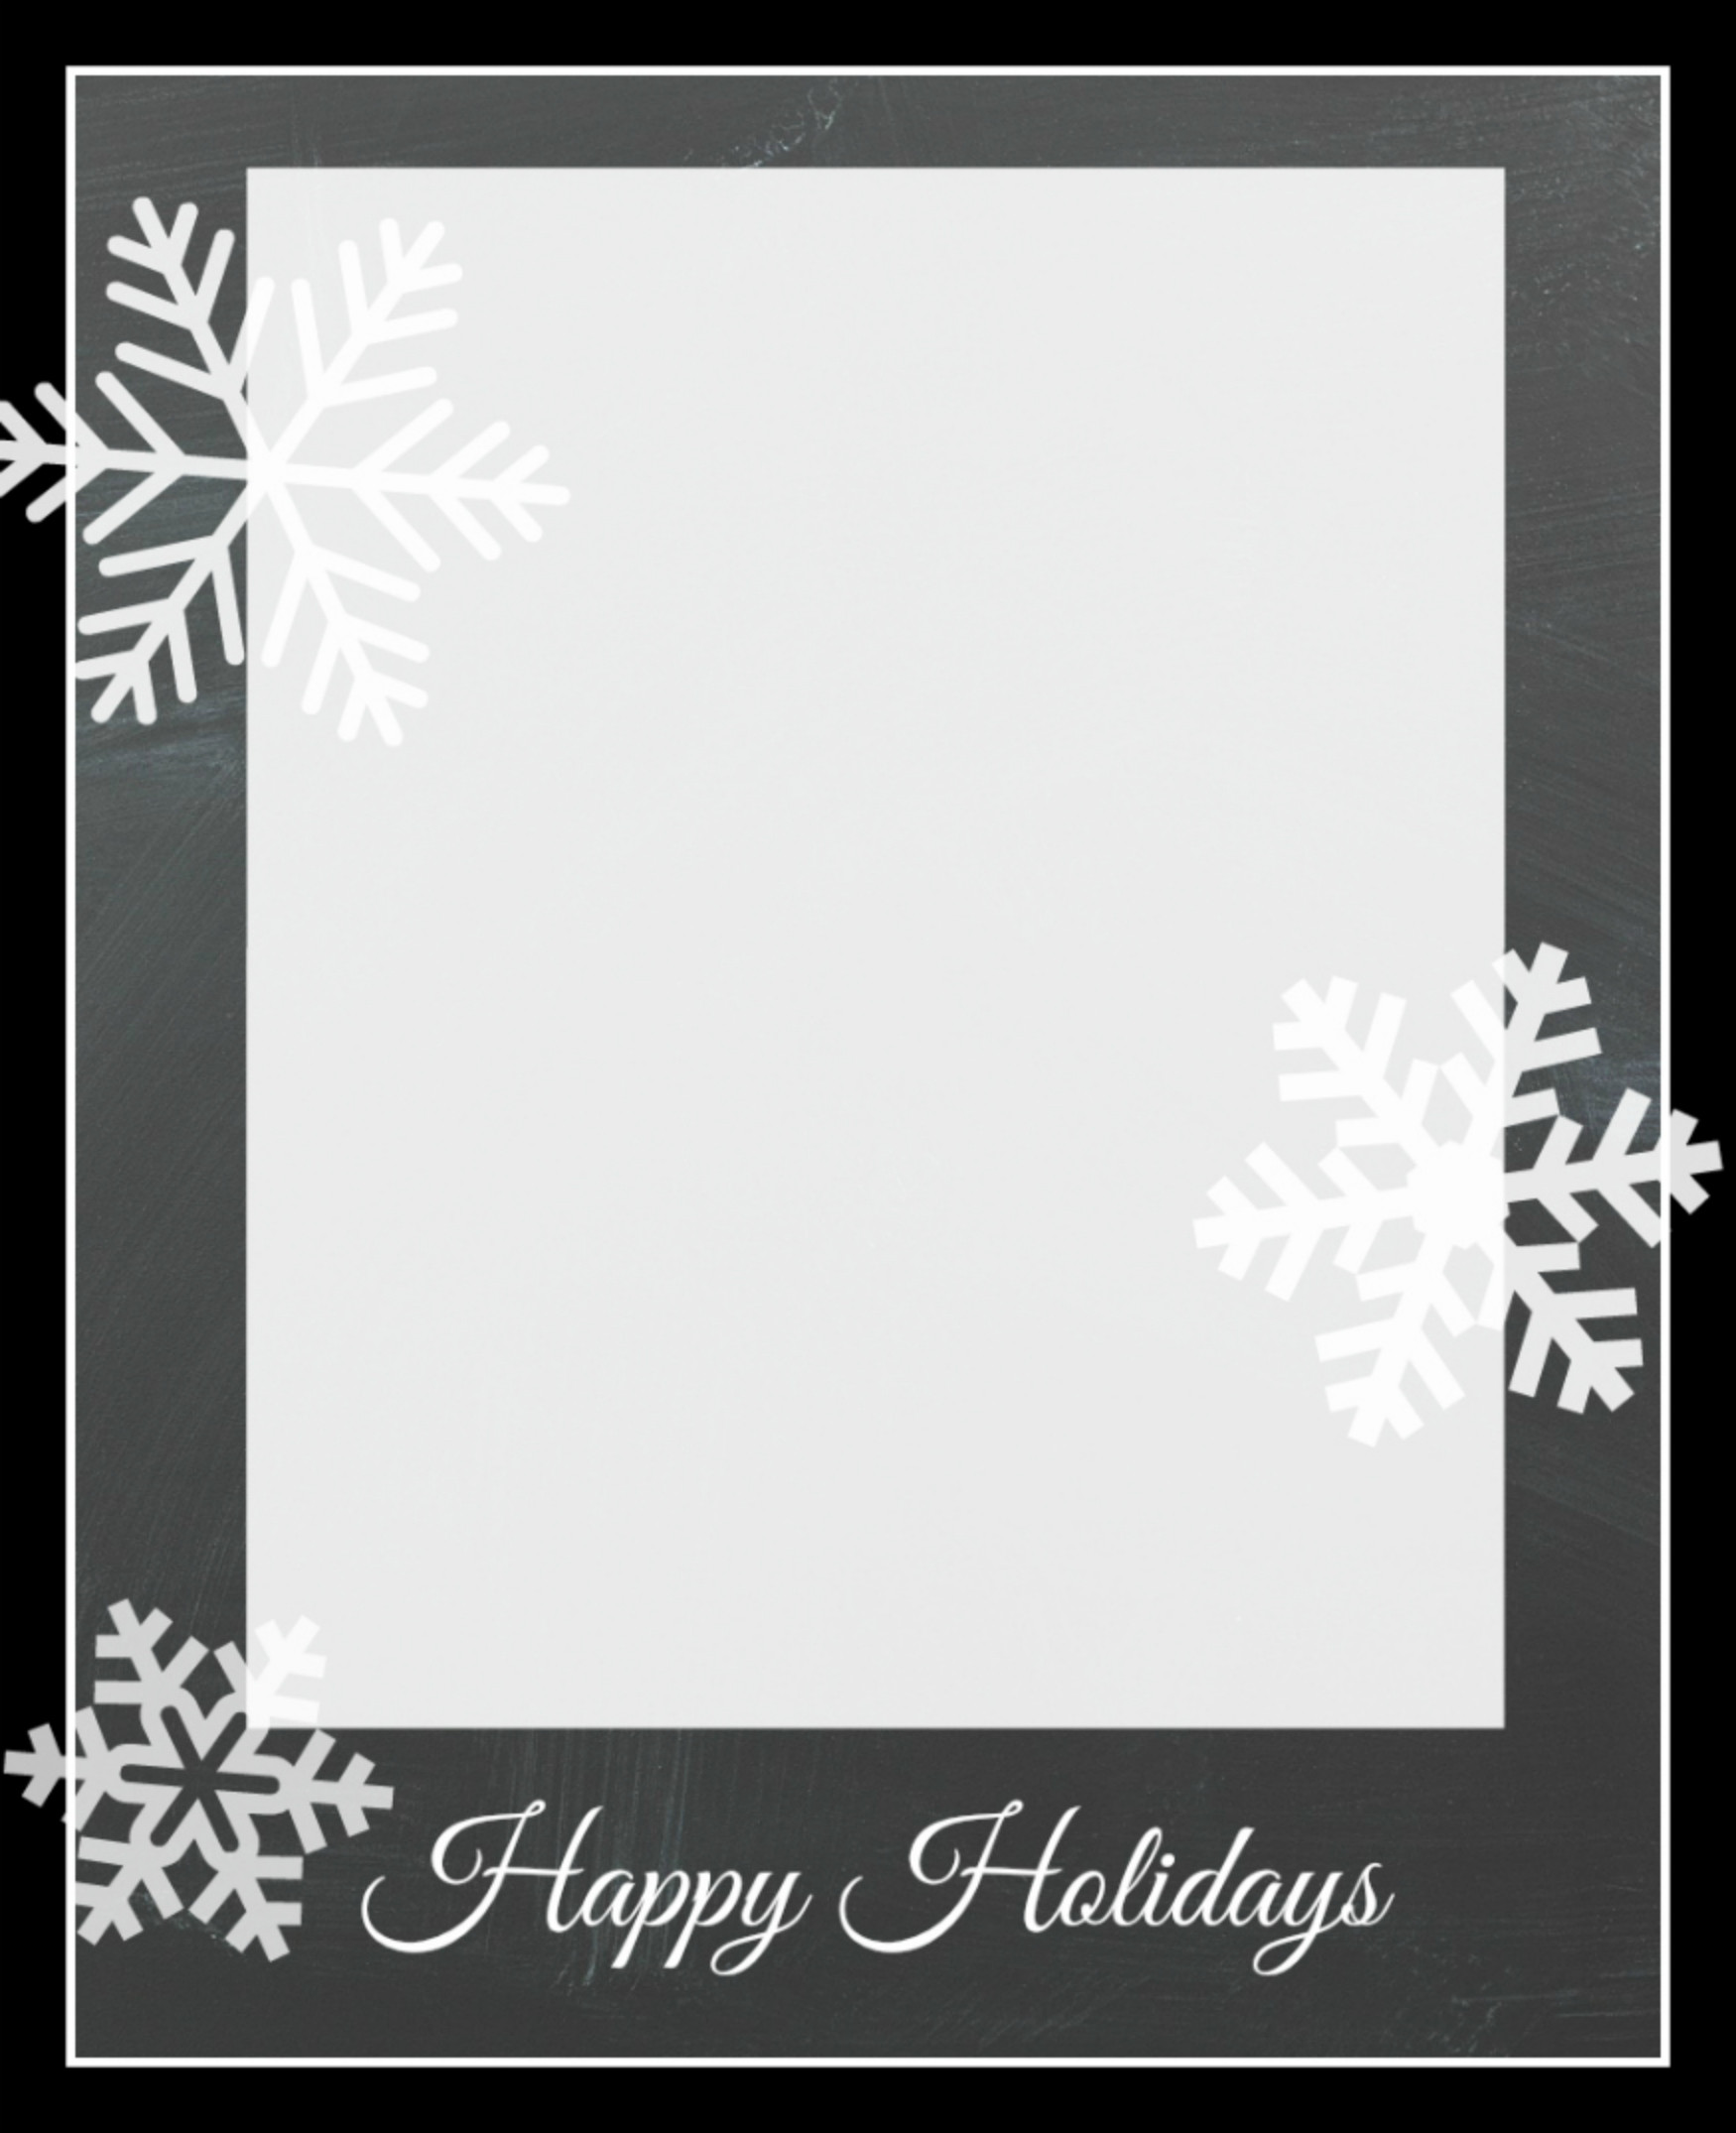 Christmas Card Template Photoshop